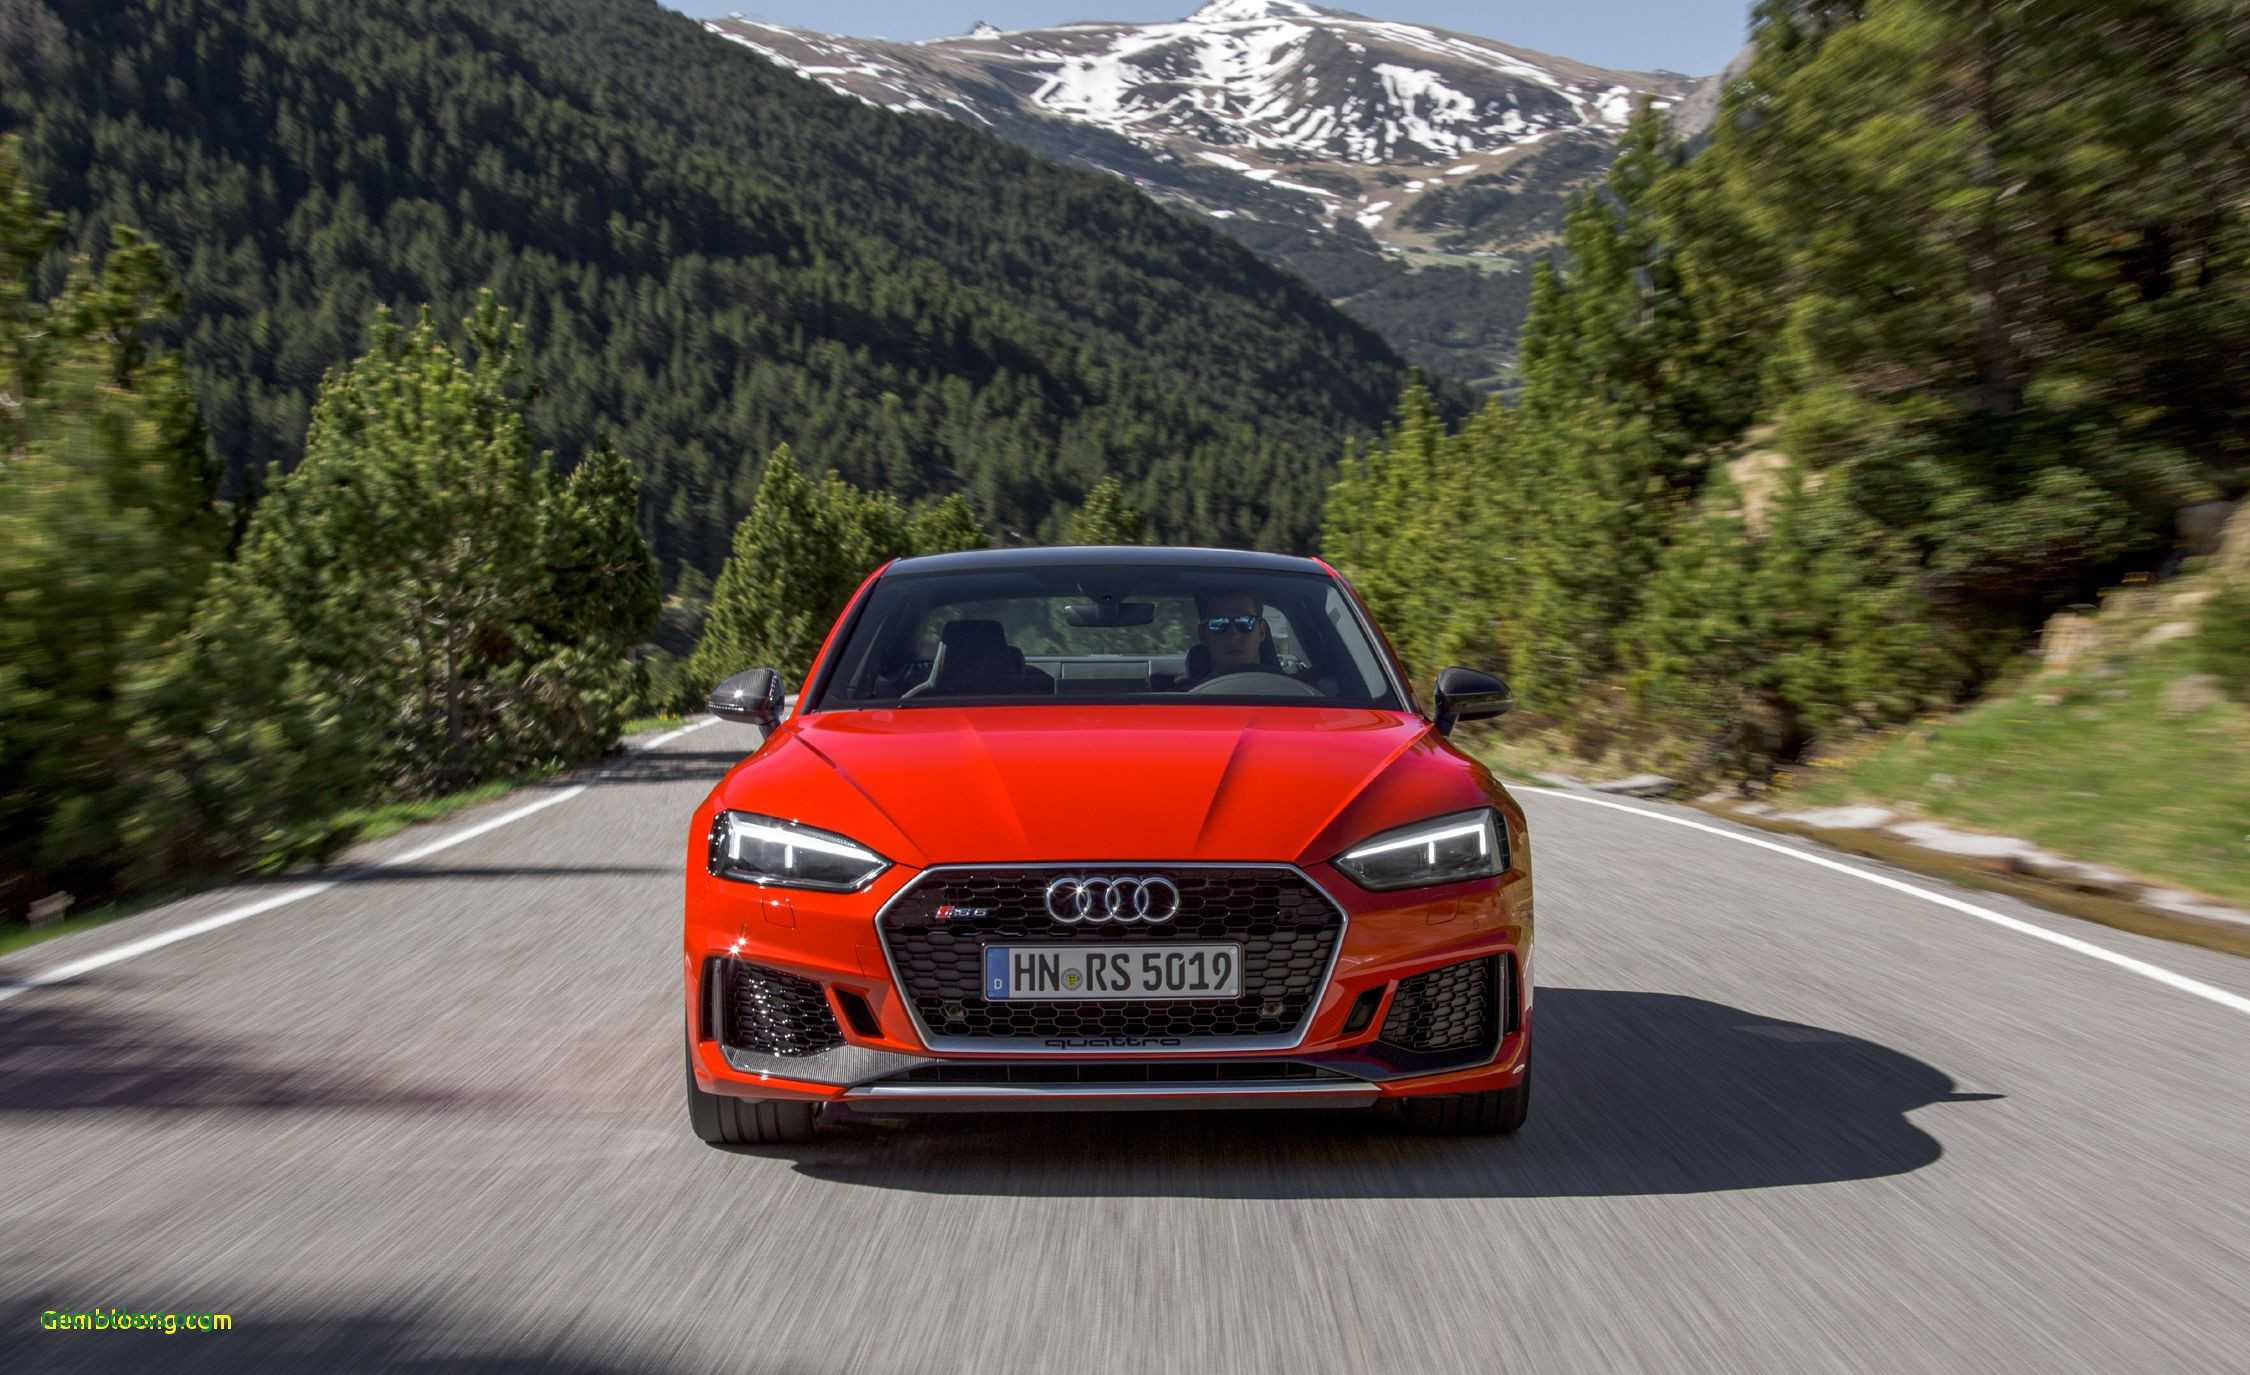 93 Best 2019 Audi Rs5 Tdi Performance and New Engine